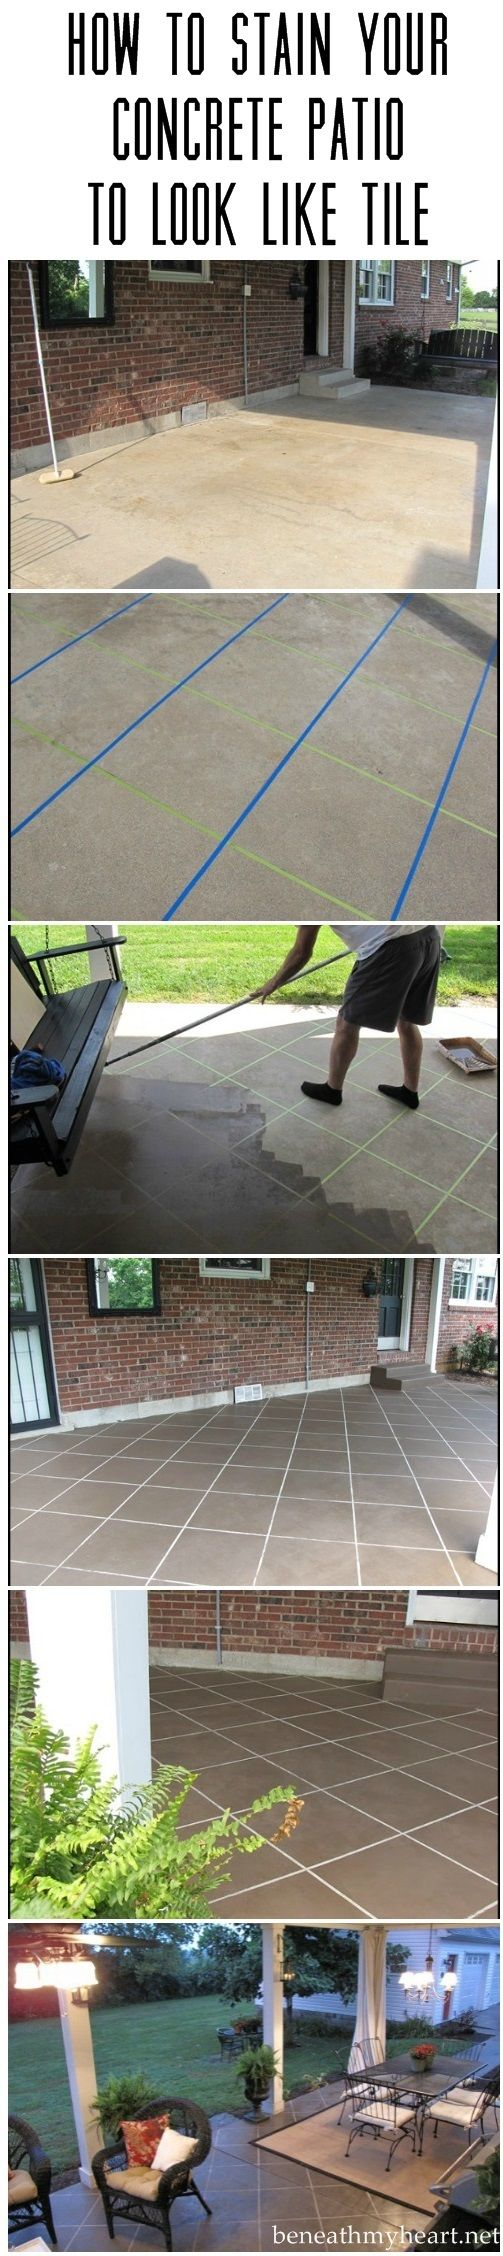 How to stain your concrete patio to look like tile. beneathmyheart.net